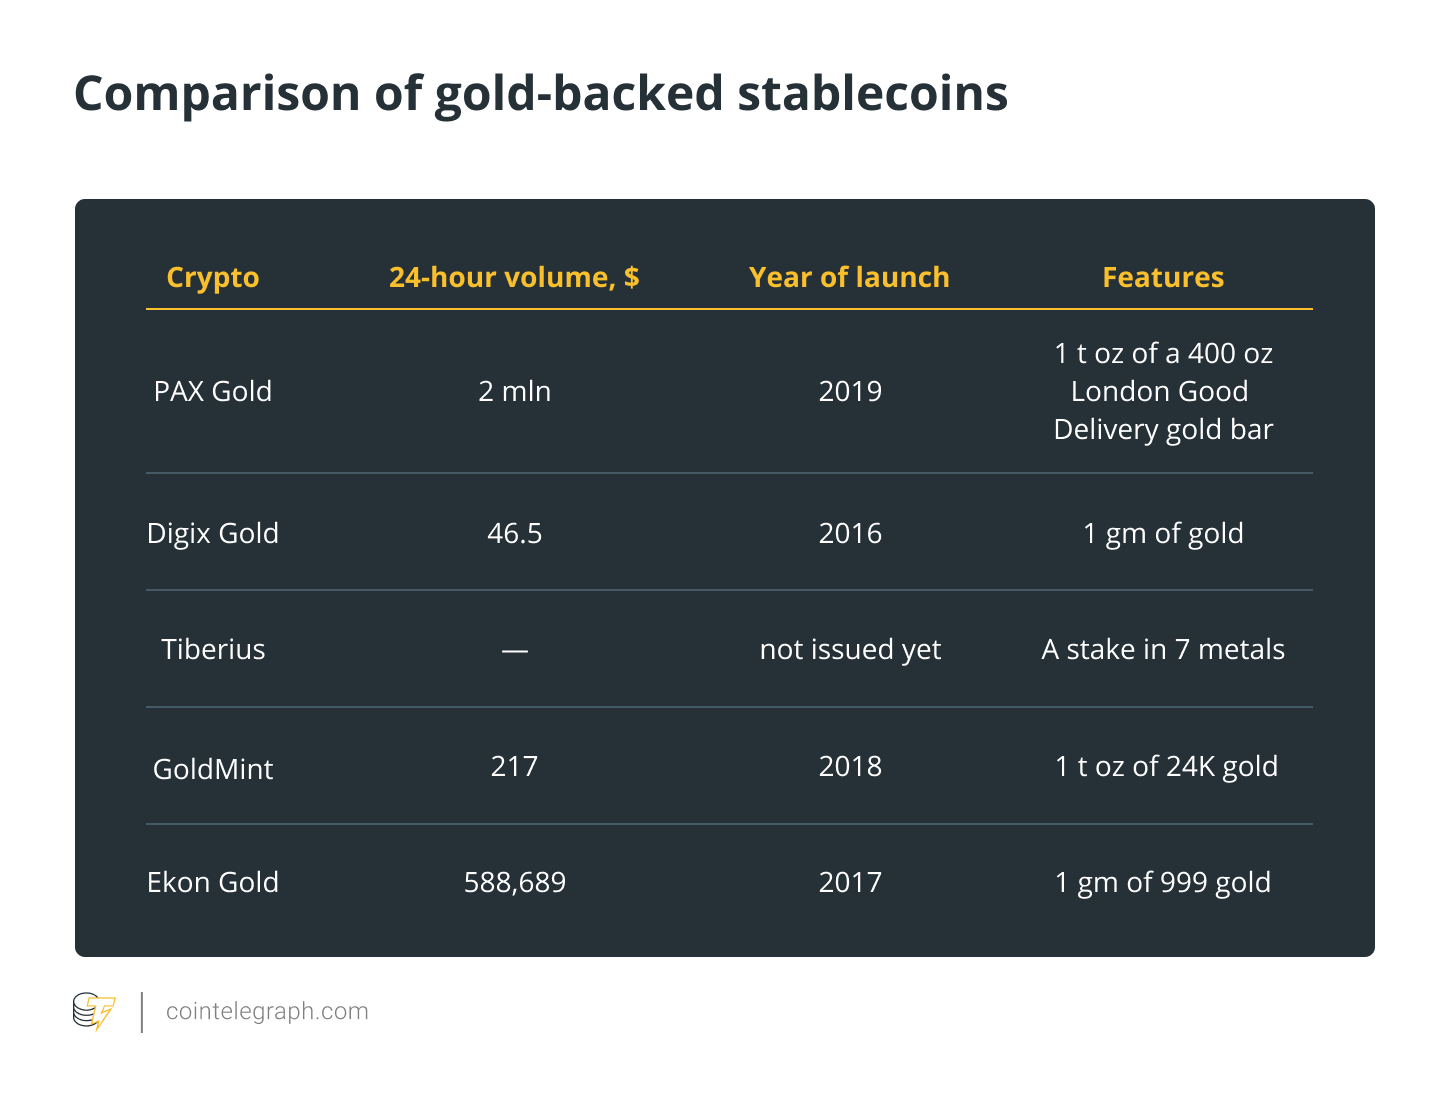 Comparison of gold-backed stablecoins